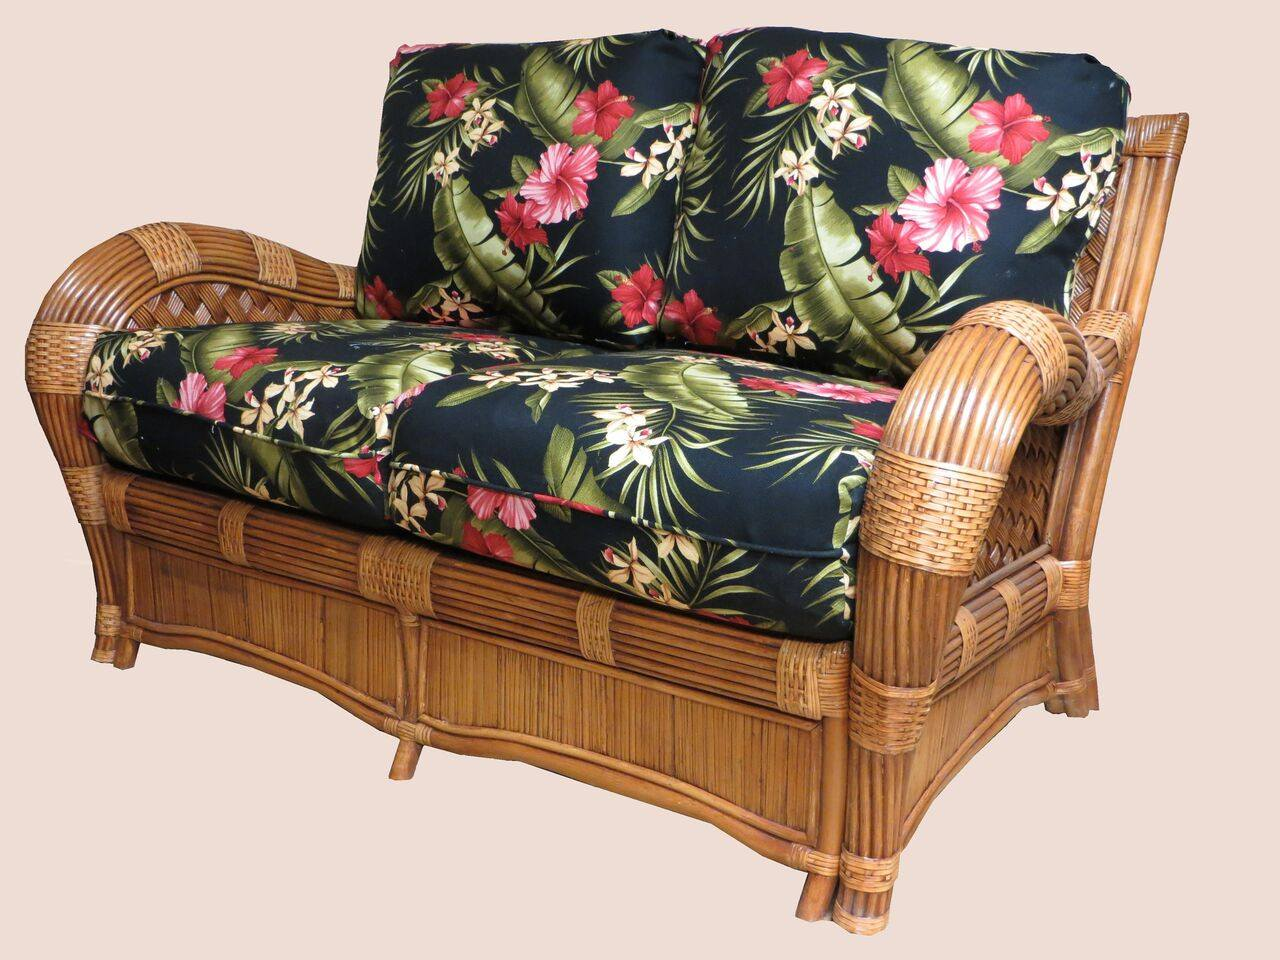 Spice Islands Kingston Reef Loveseat Cinnamon By Spice Islands - Rattan Imports